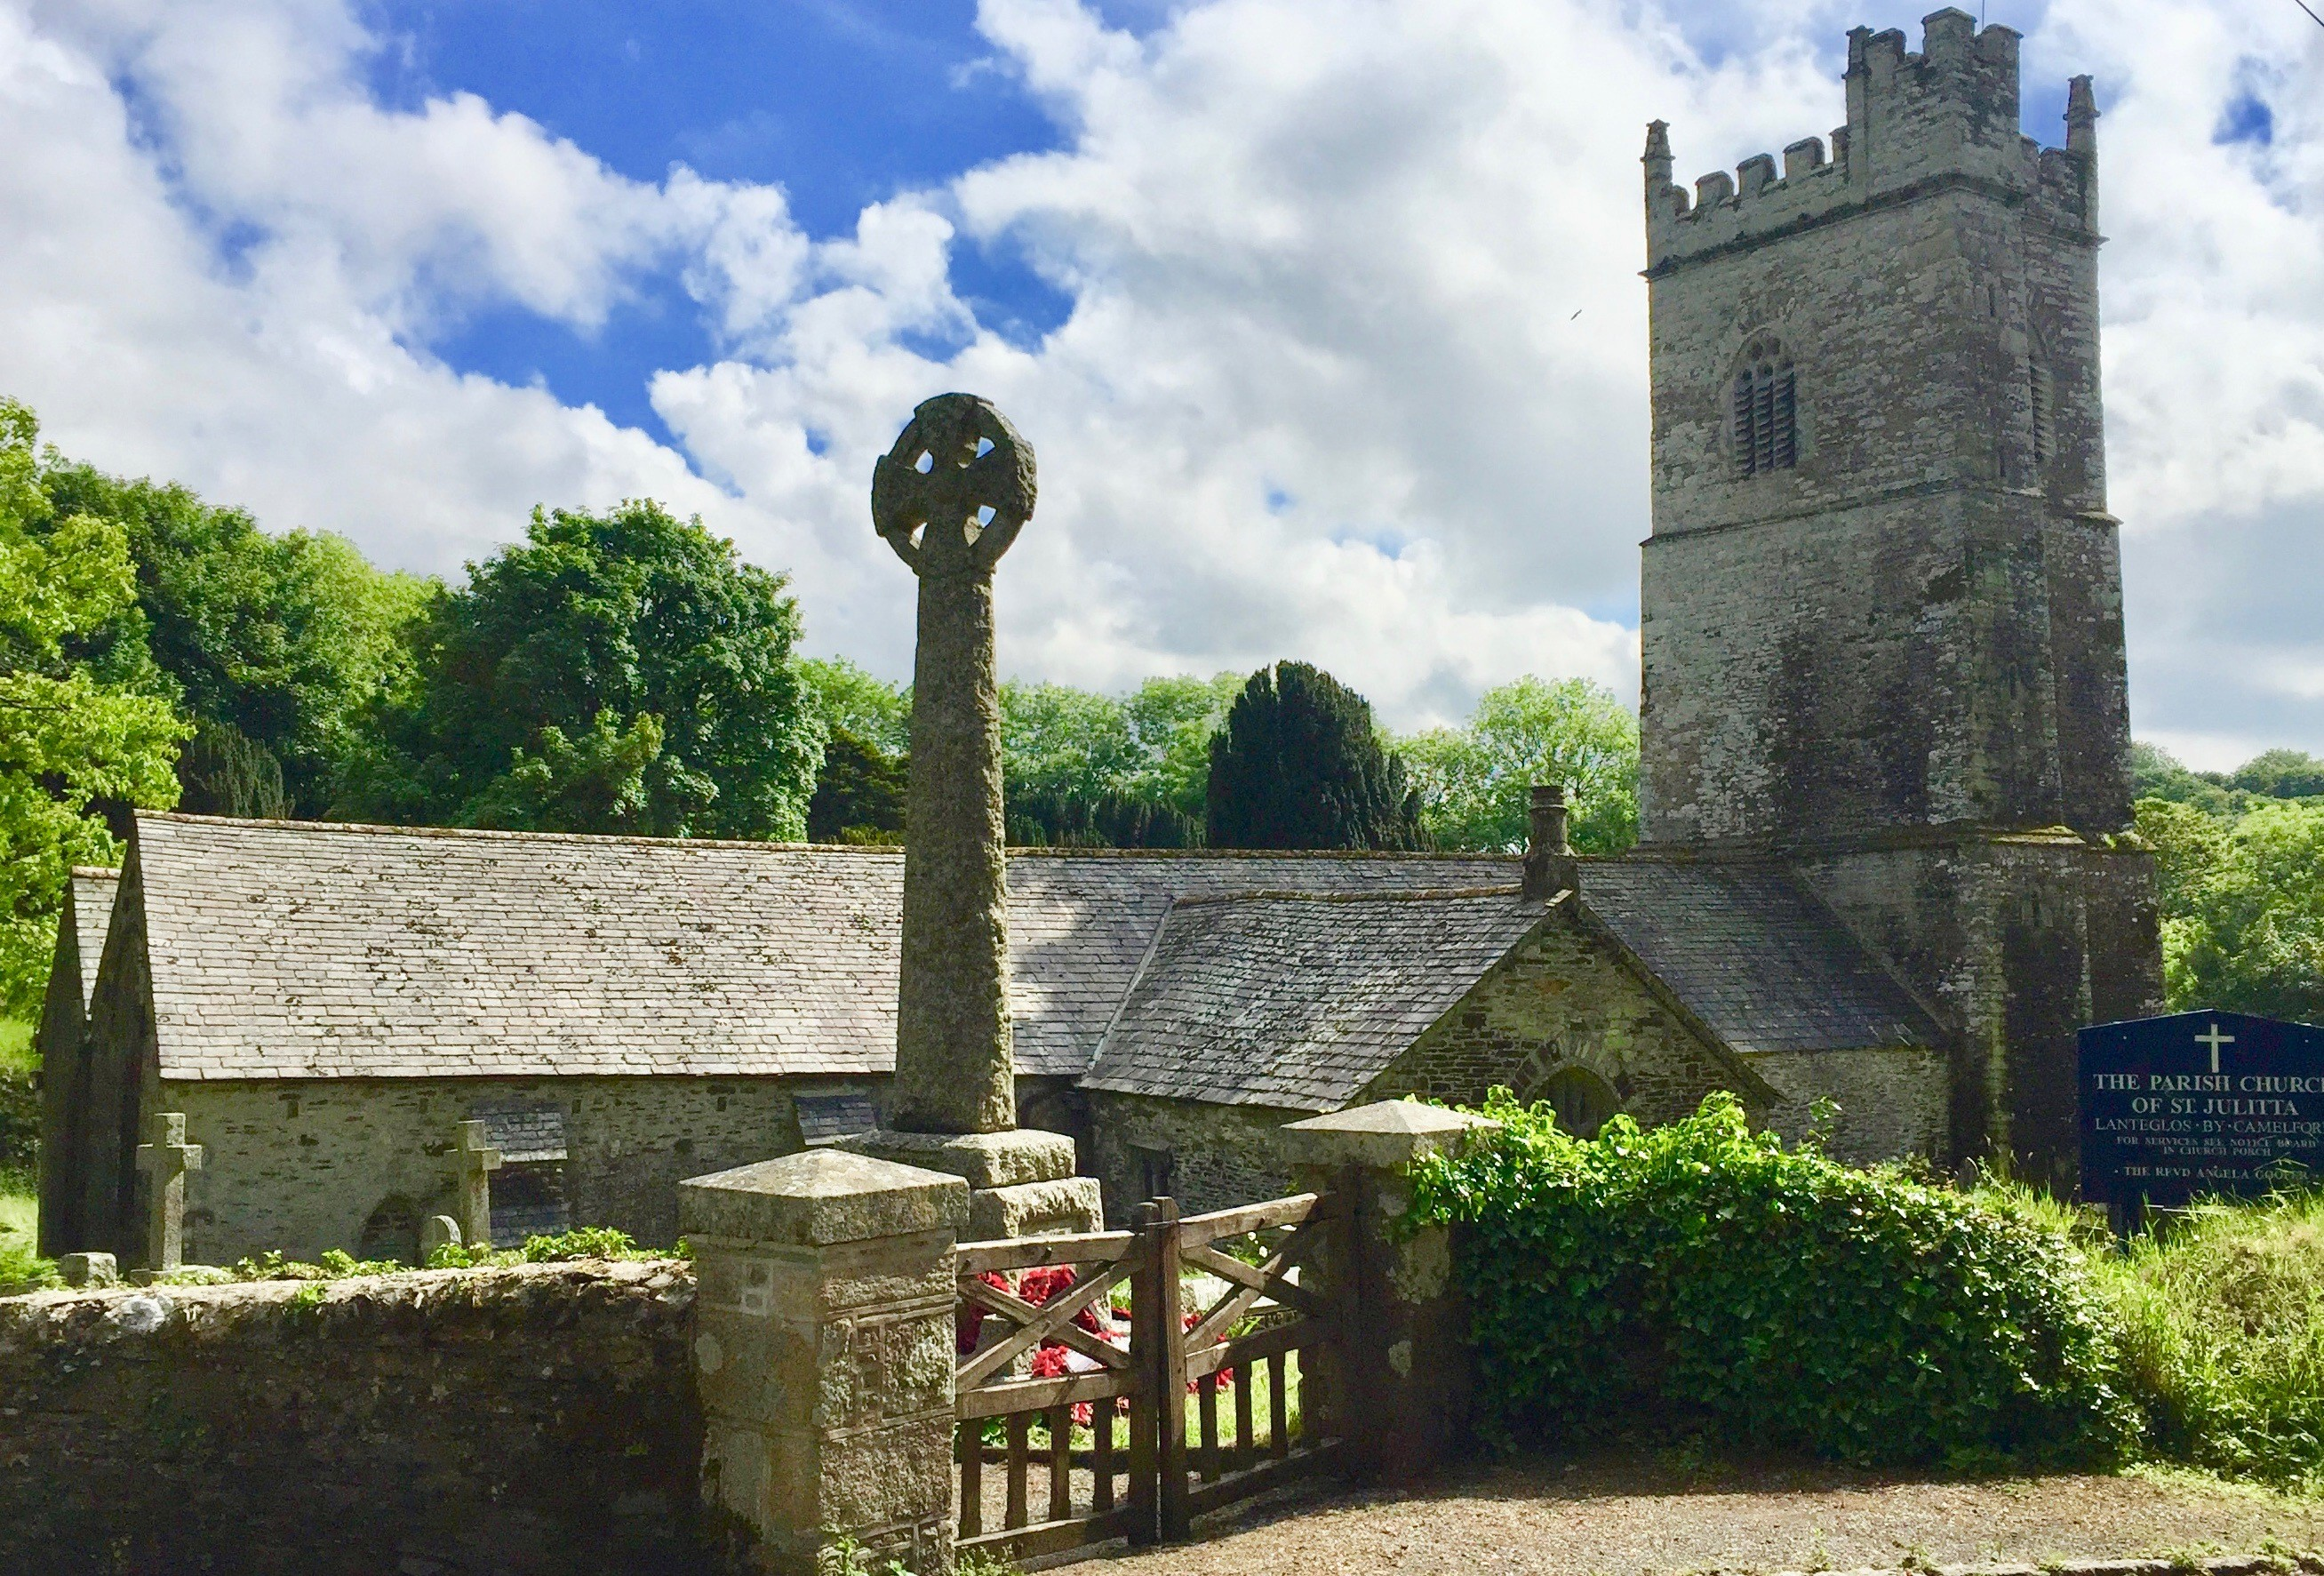 LANTEGLOS BY CAMELFORD, St Julitta